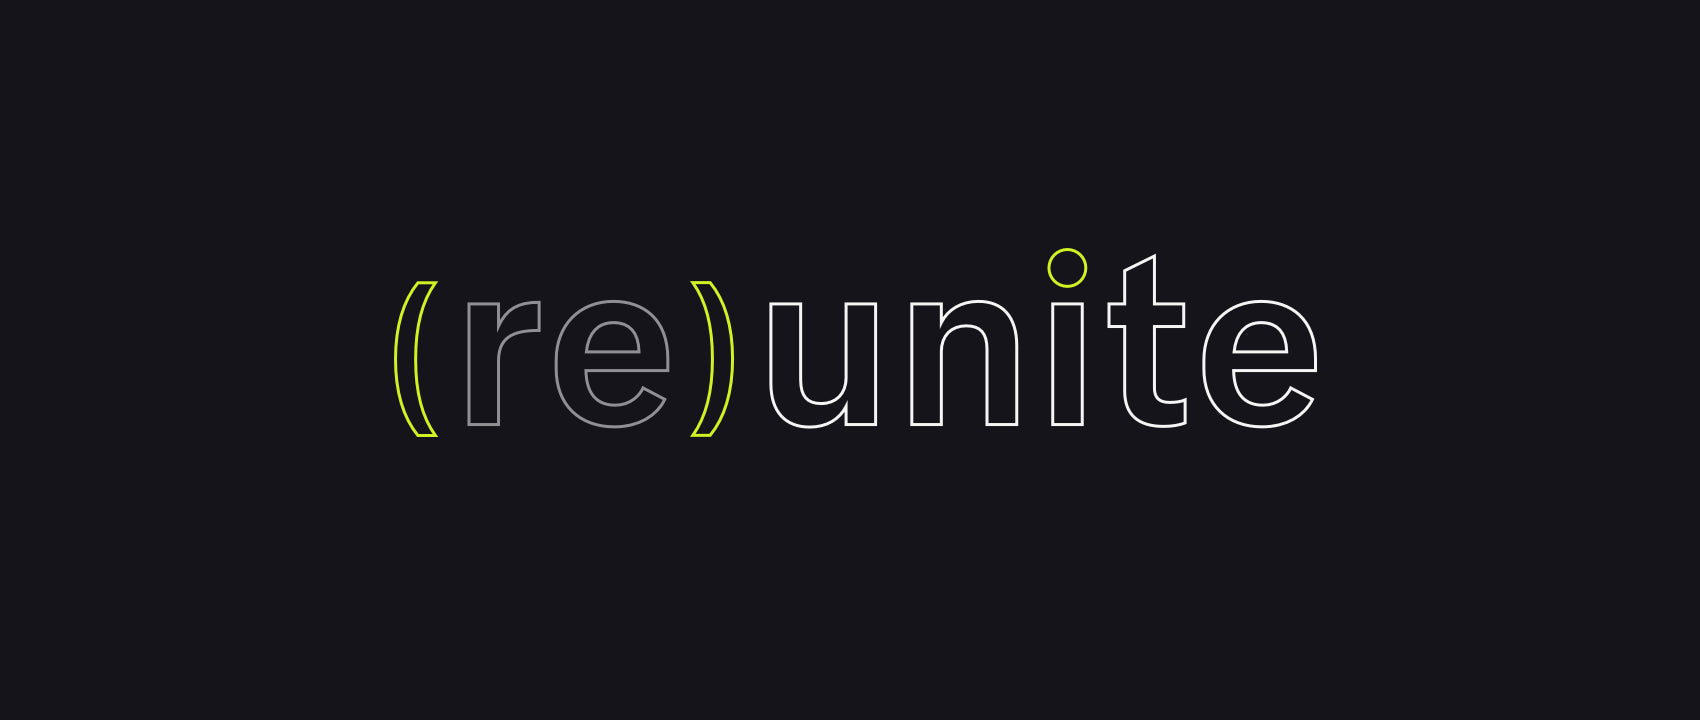 Reunite 2020: Everything we announced and exclusive updates from Shopify Plus